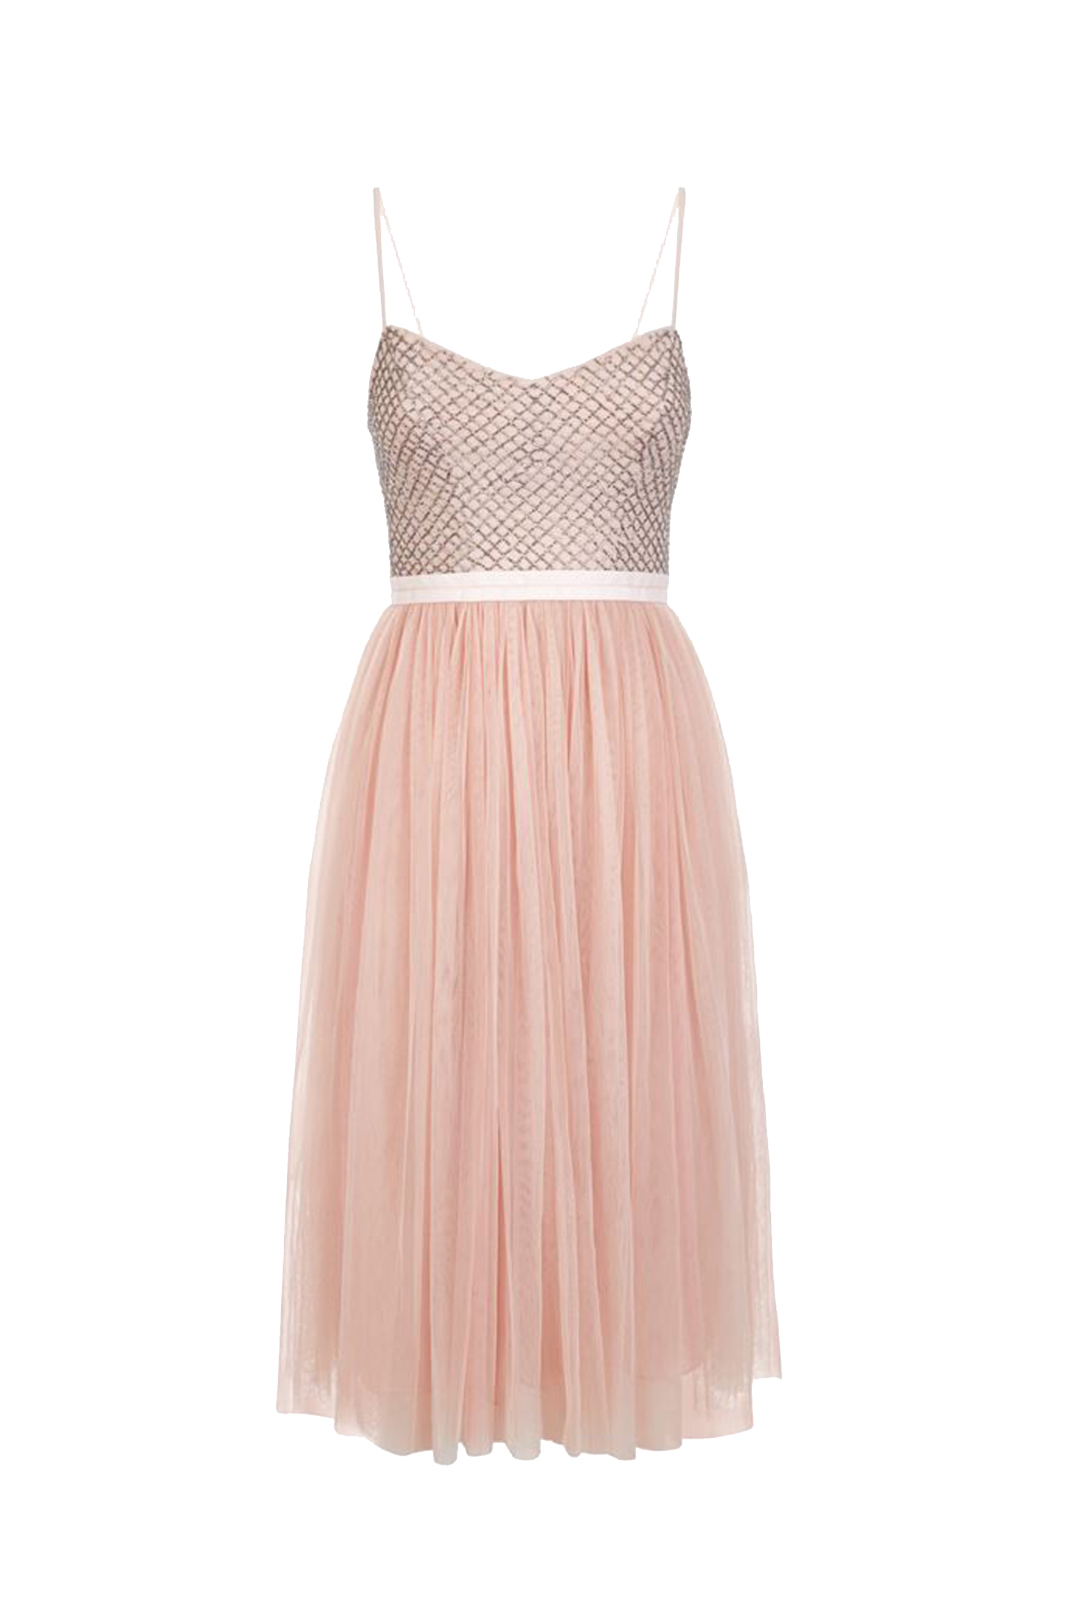 Blossom Pink Ballet Dress